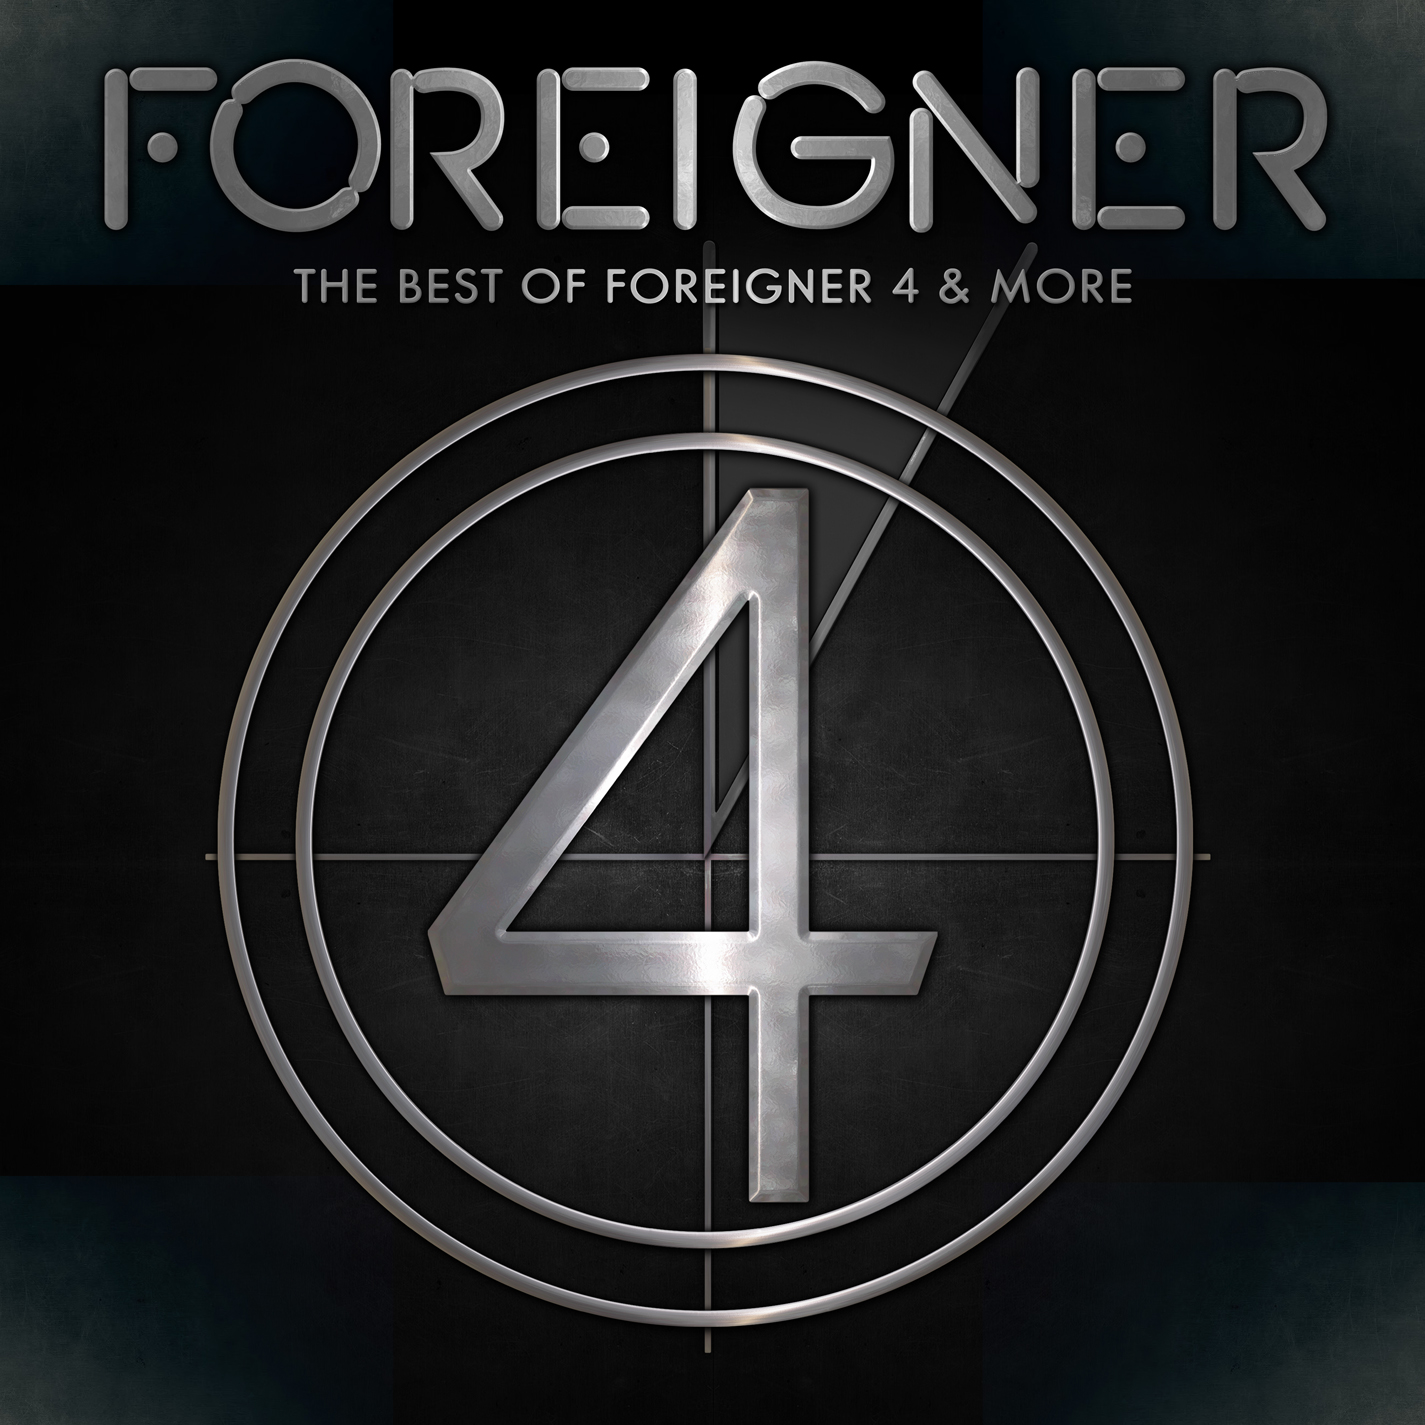 Foreigner (band) - Wikipedia